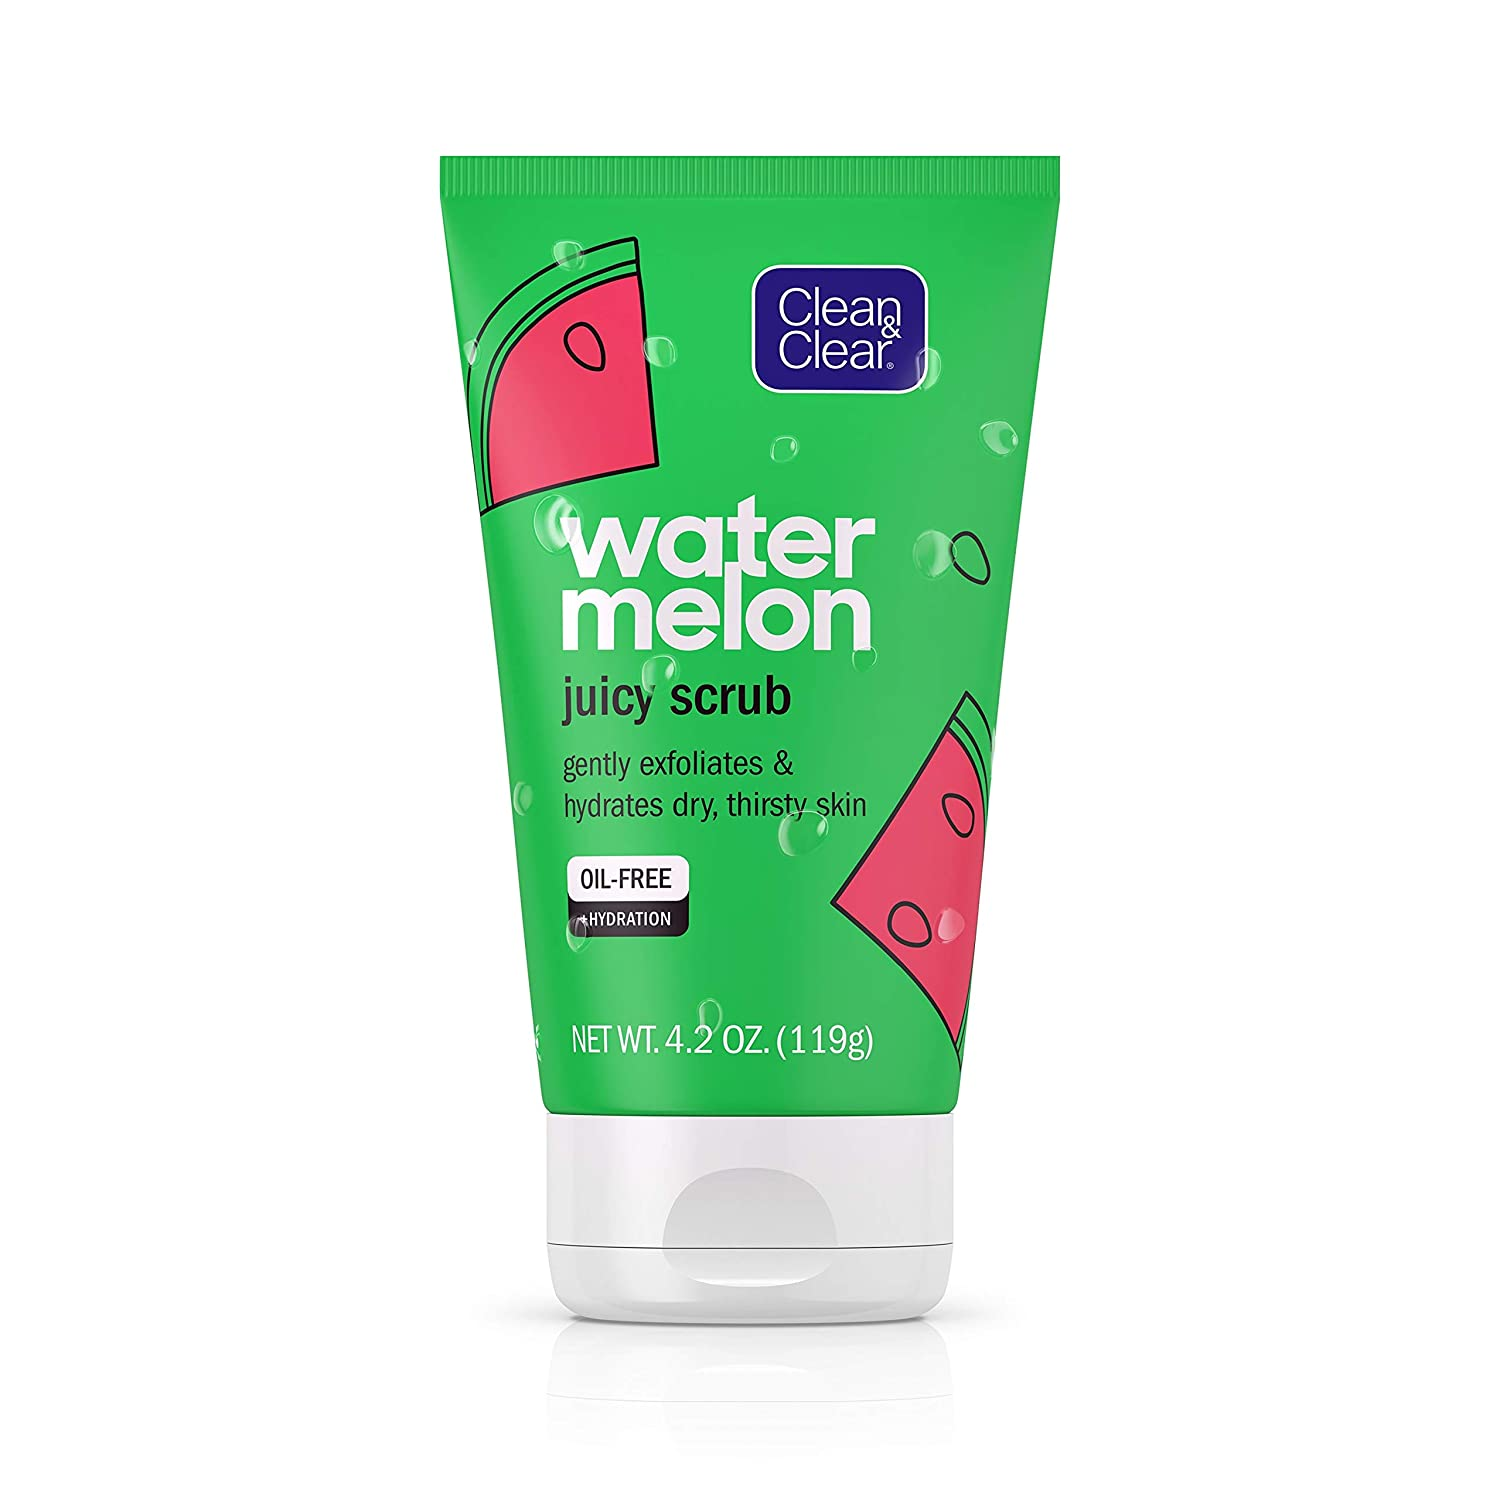 Clean & Clear Hydrating & Exfoliating Juicy Watermelon Face Scrub, Buffs Dirt & Oil While Cleansing & Quenching Dry Skin, Gentle & Oil-Free Daily Facial Cleanser, 4.2 oz